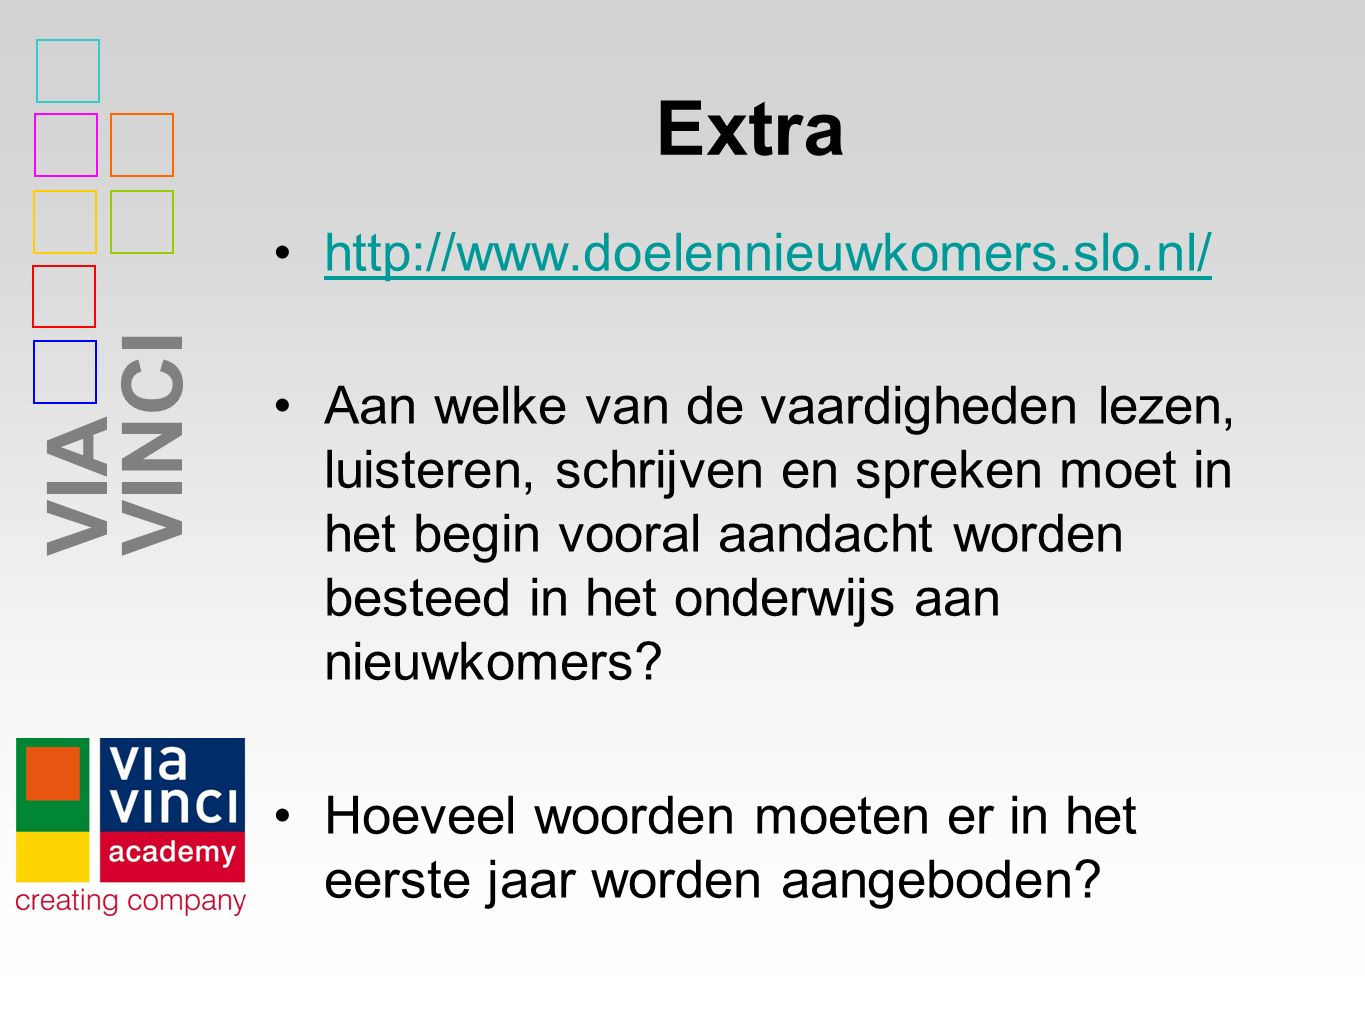 Extra http://www.doelennieuwkomers.slo.nl/